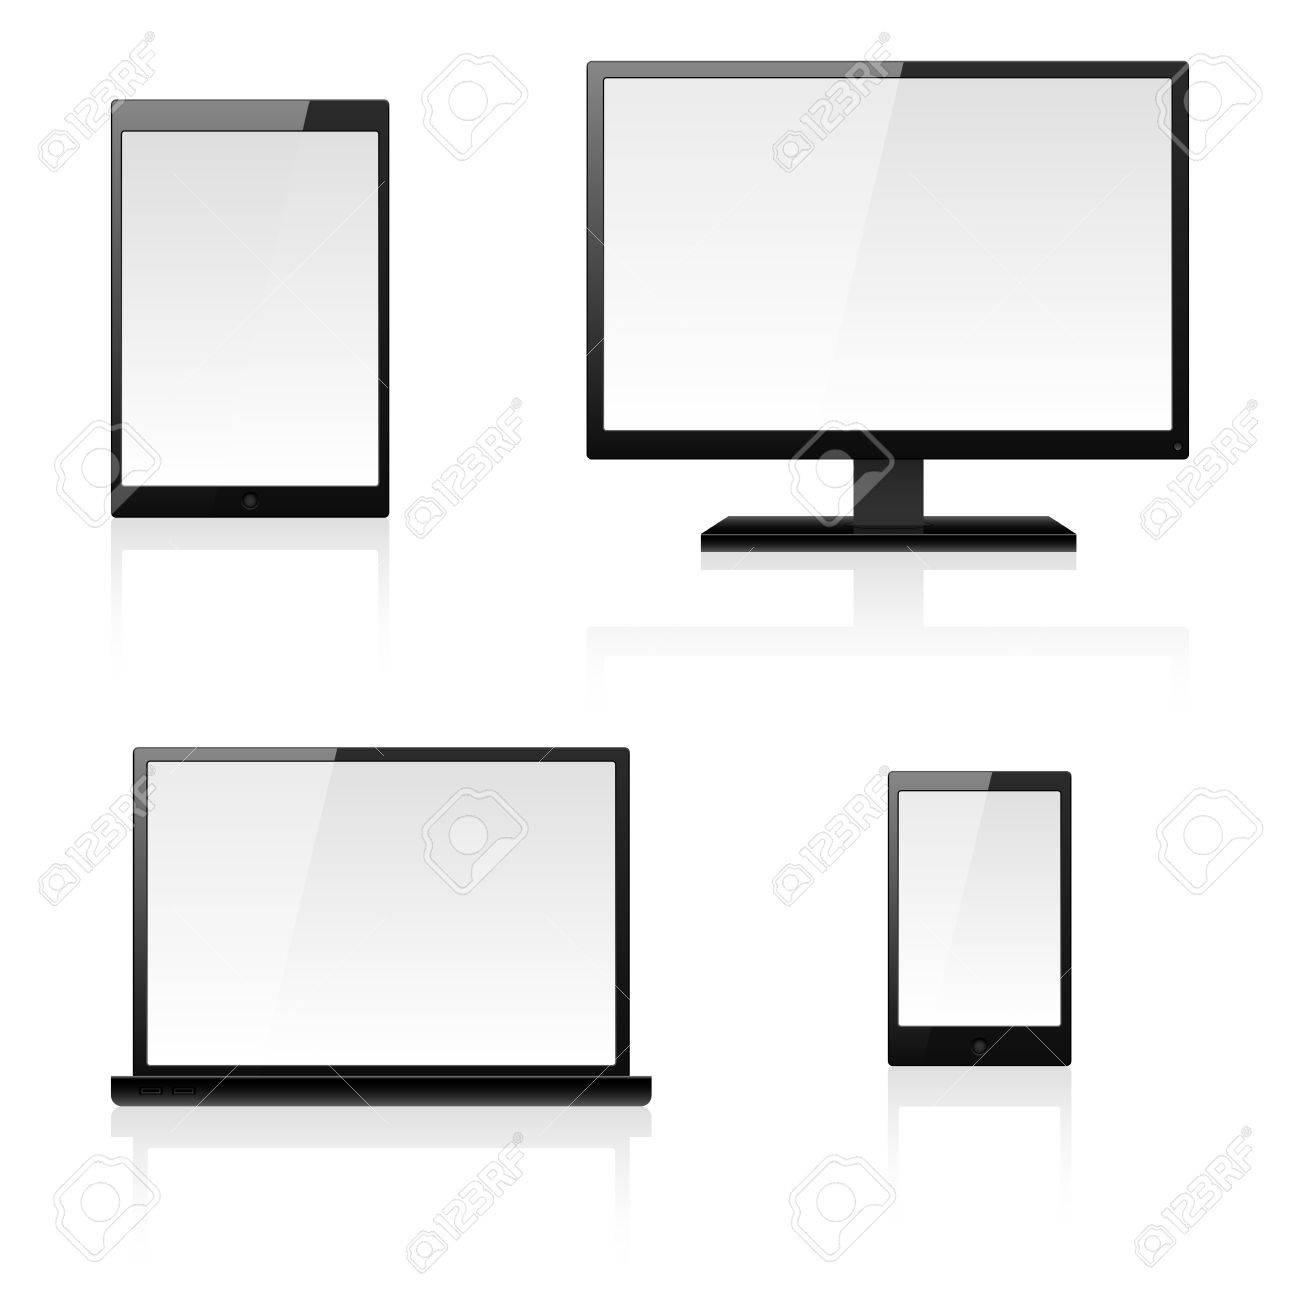 Digital devices. Illustration for design on white background Stock Vector - 14413903